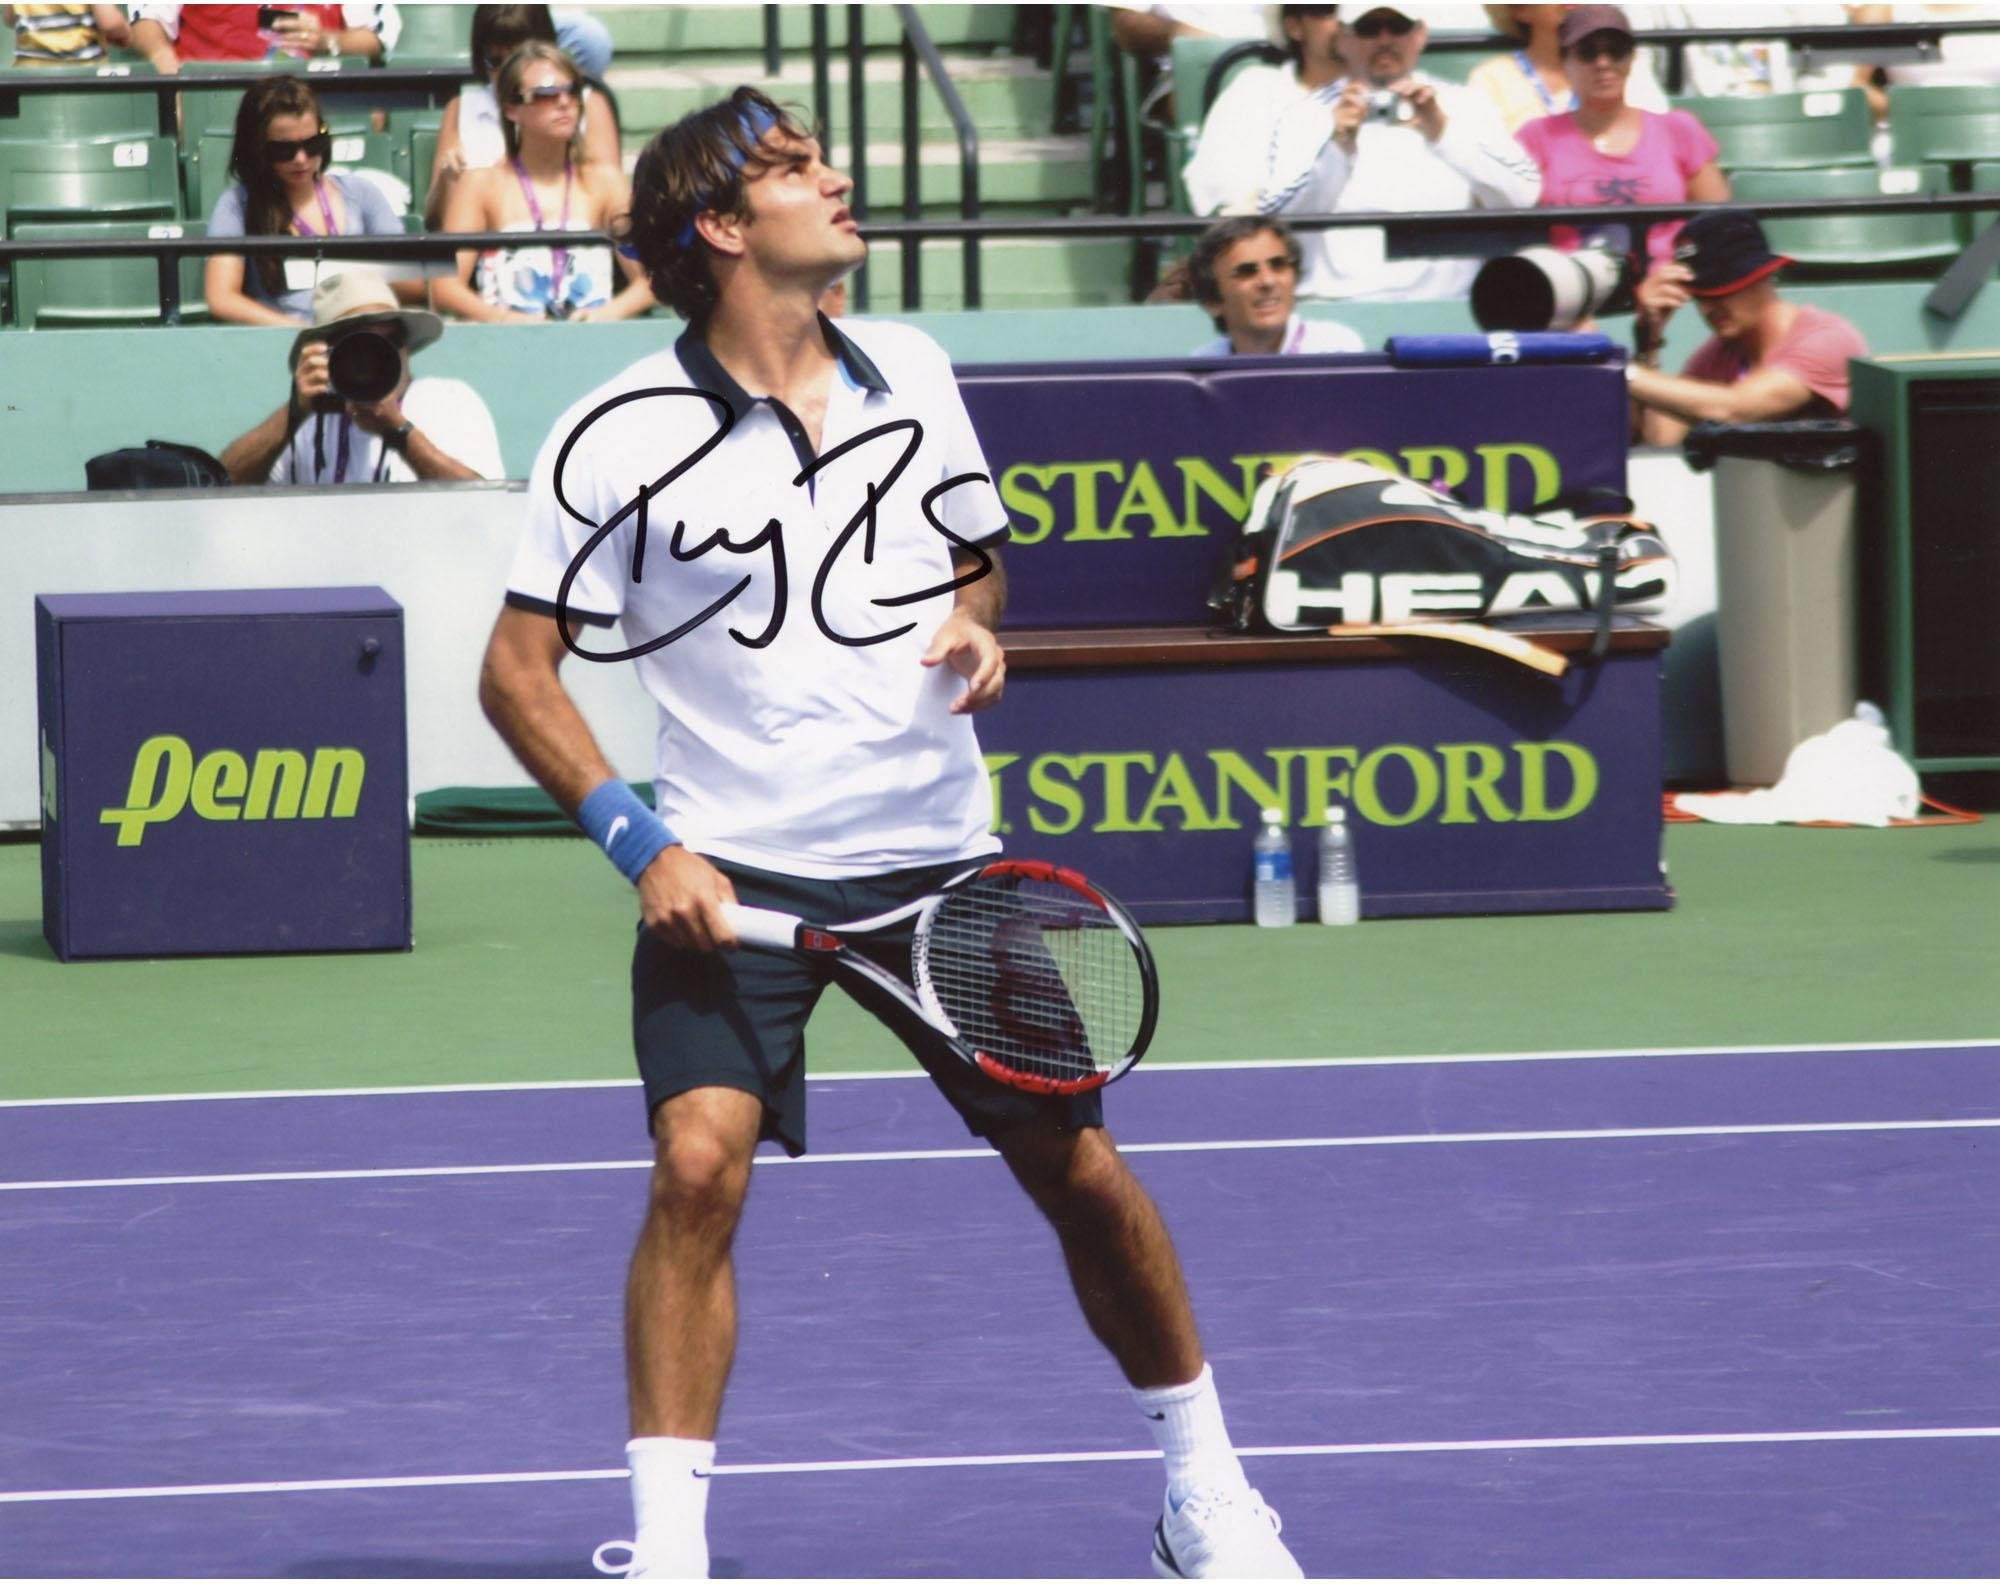 """Roger Federer Autographed 8"""" x 10"""" Looking Up Photograph Fanatics Authentic Certified Autographed Tennis Photos"""